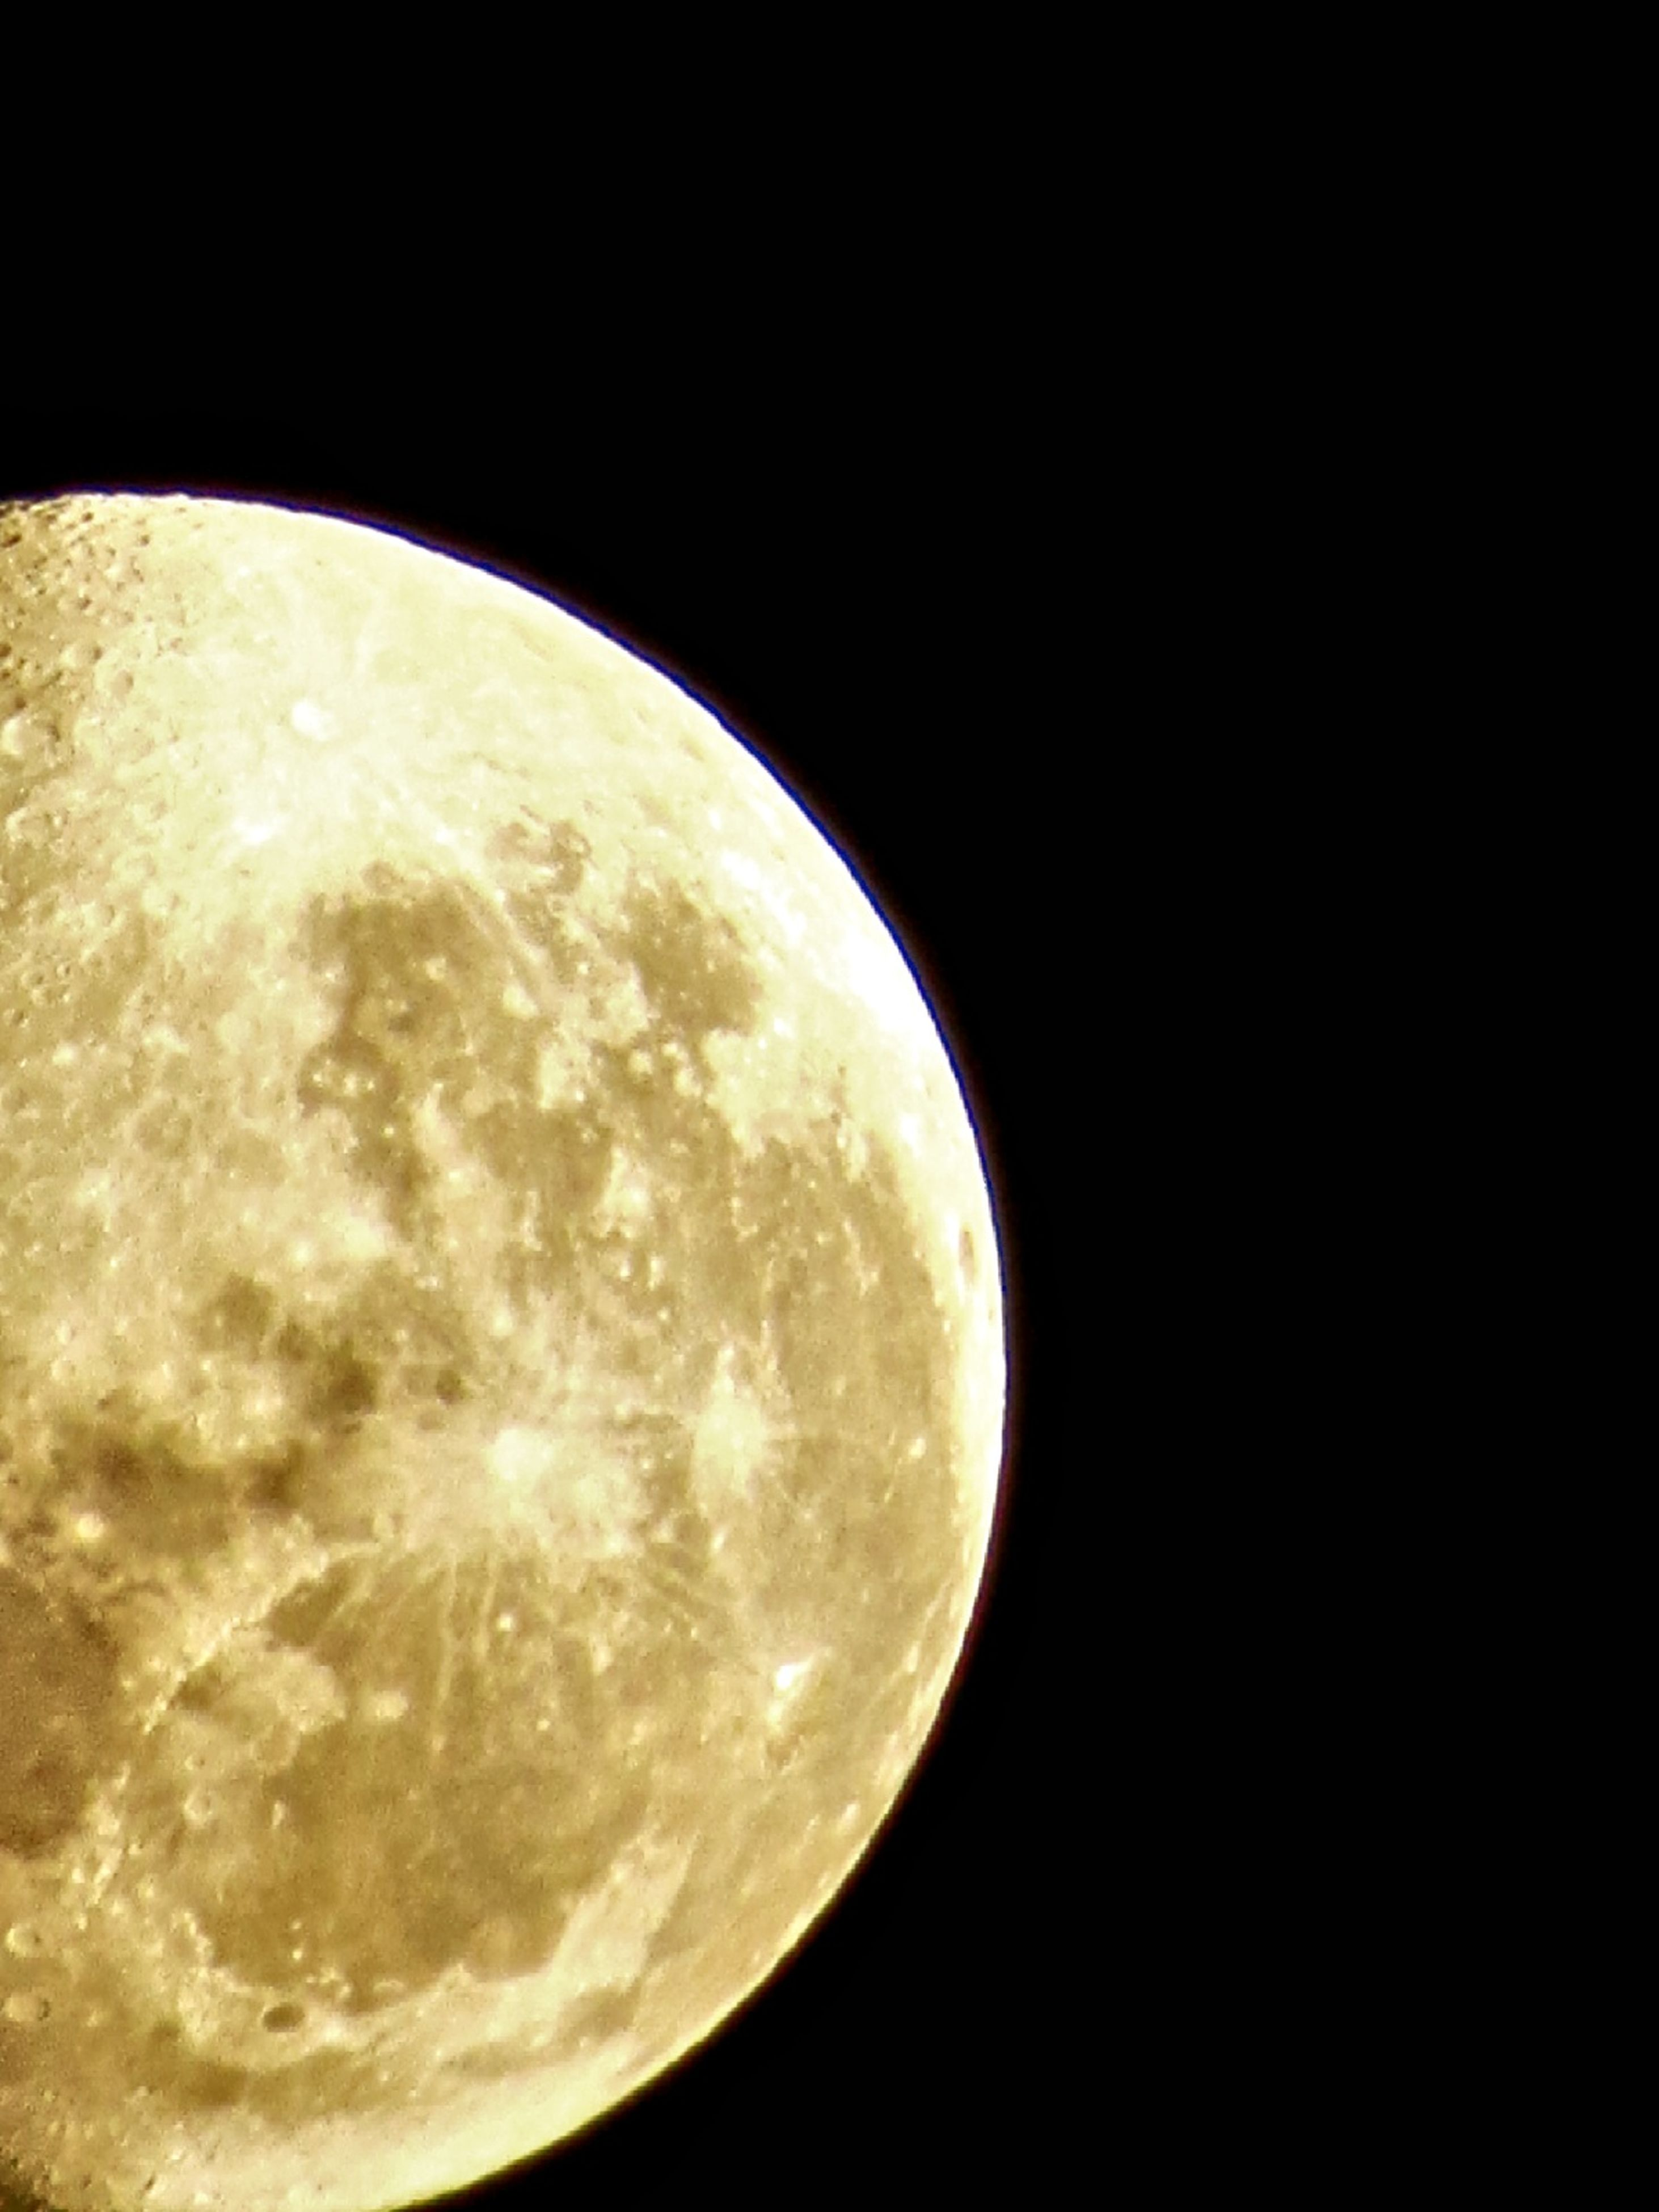 astronomy, moon, night, circle, moon surface, planetary moon, dark, beauty in nature, copy space, space exploration, nature, full moon, tranquility, tranquil scene, sky, scenics, low angle view, discovery, close-up, no people